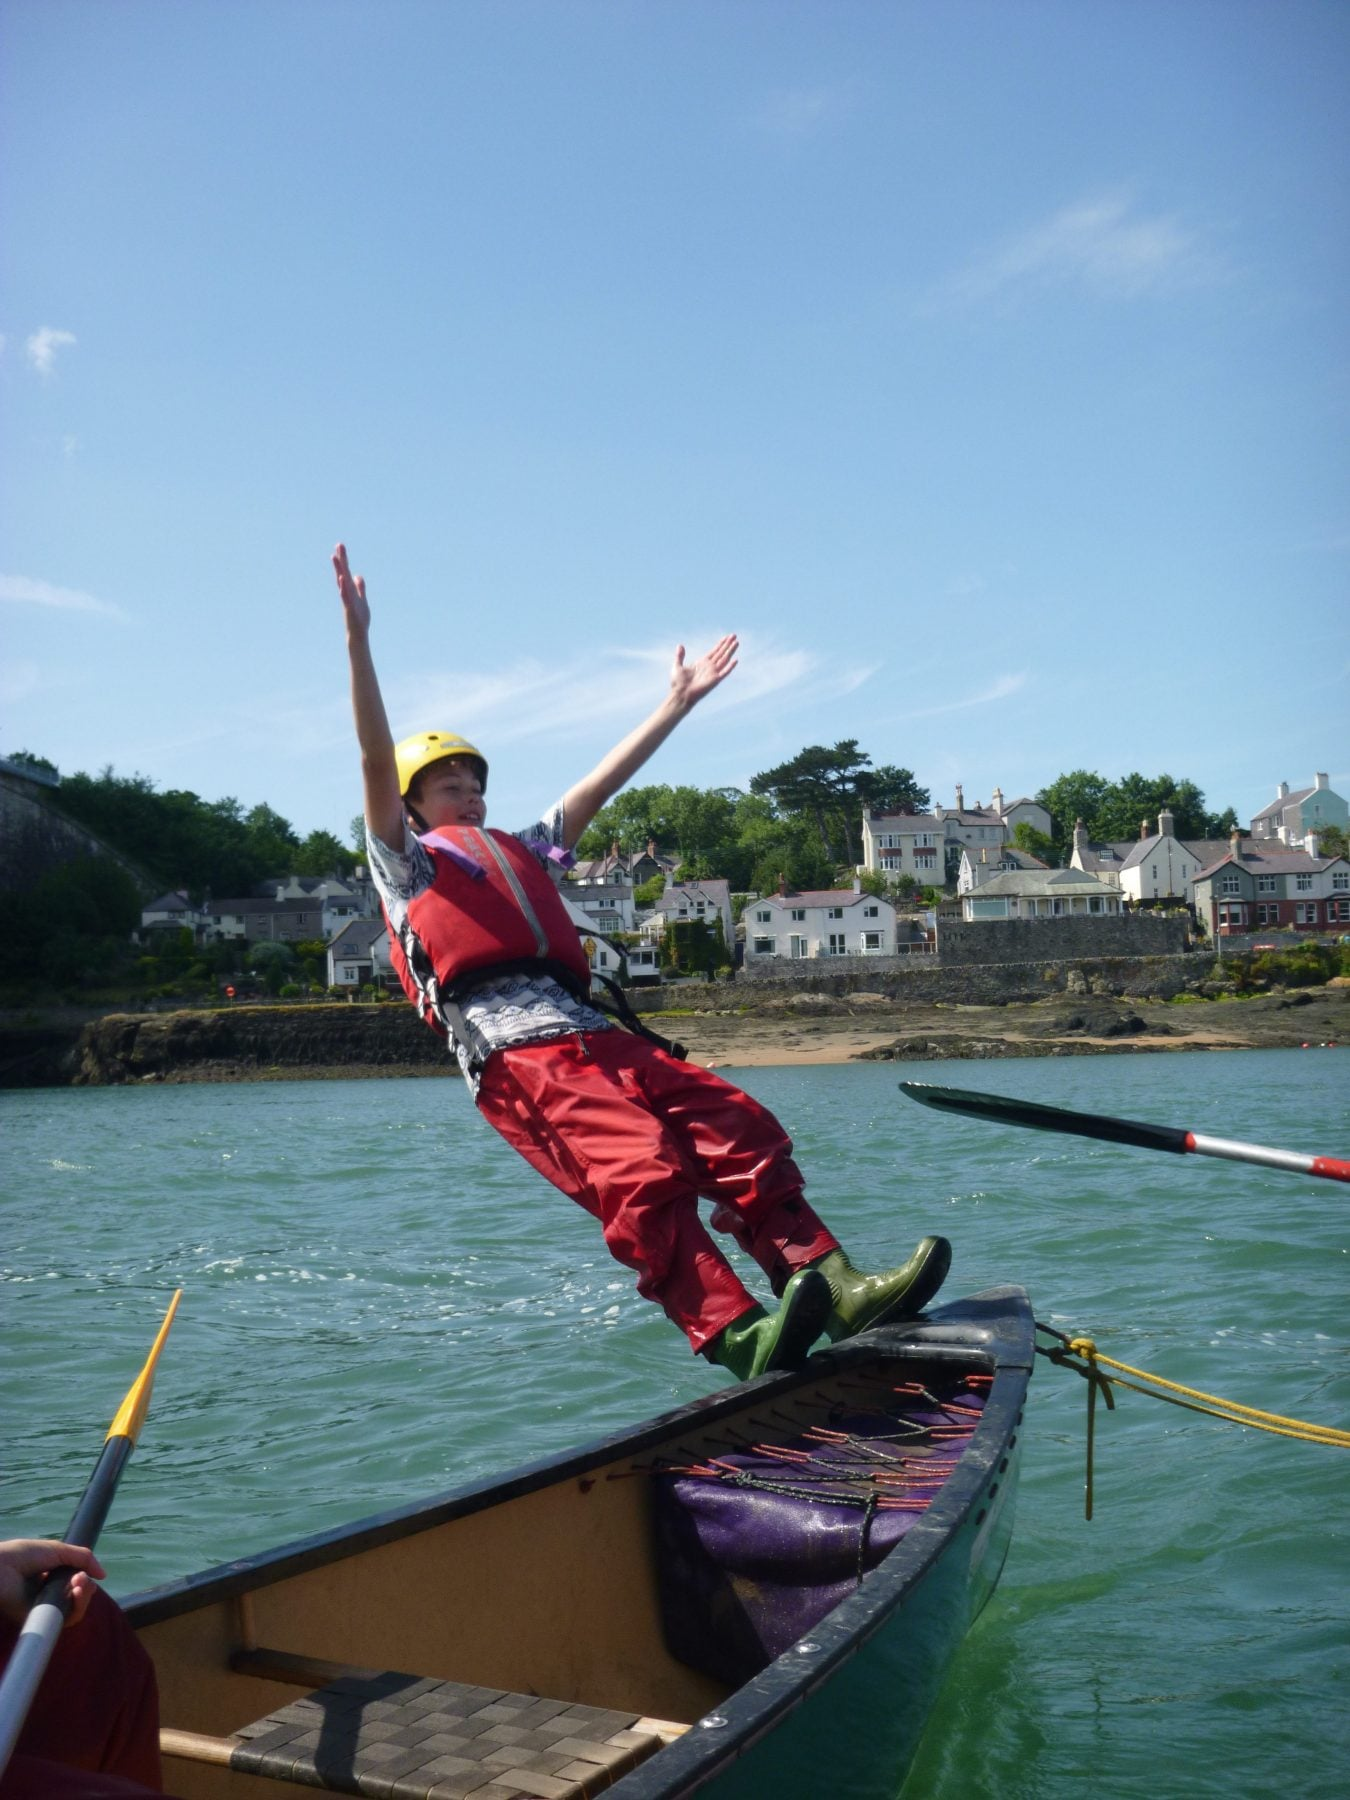 Jumping overboard, canoe journey in Menai Straits, Anglesey